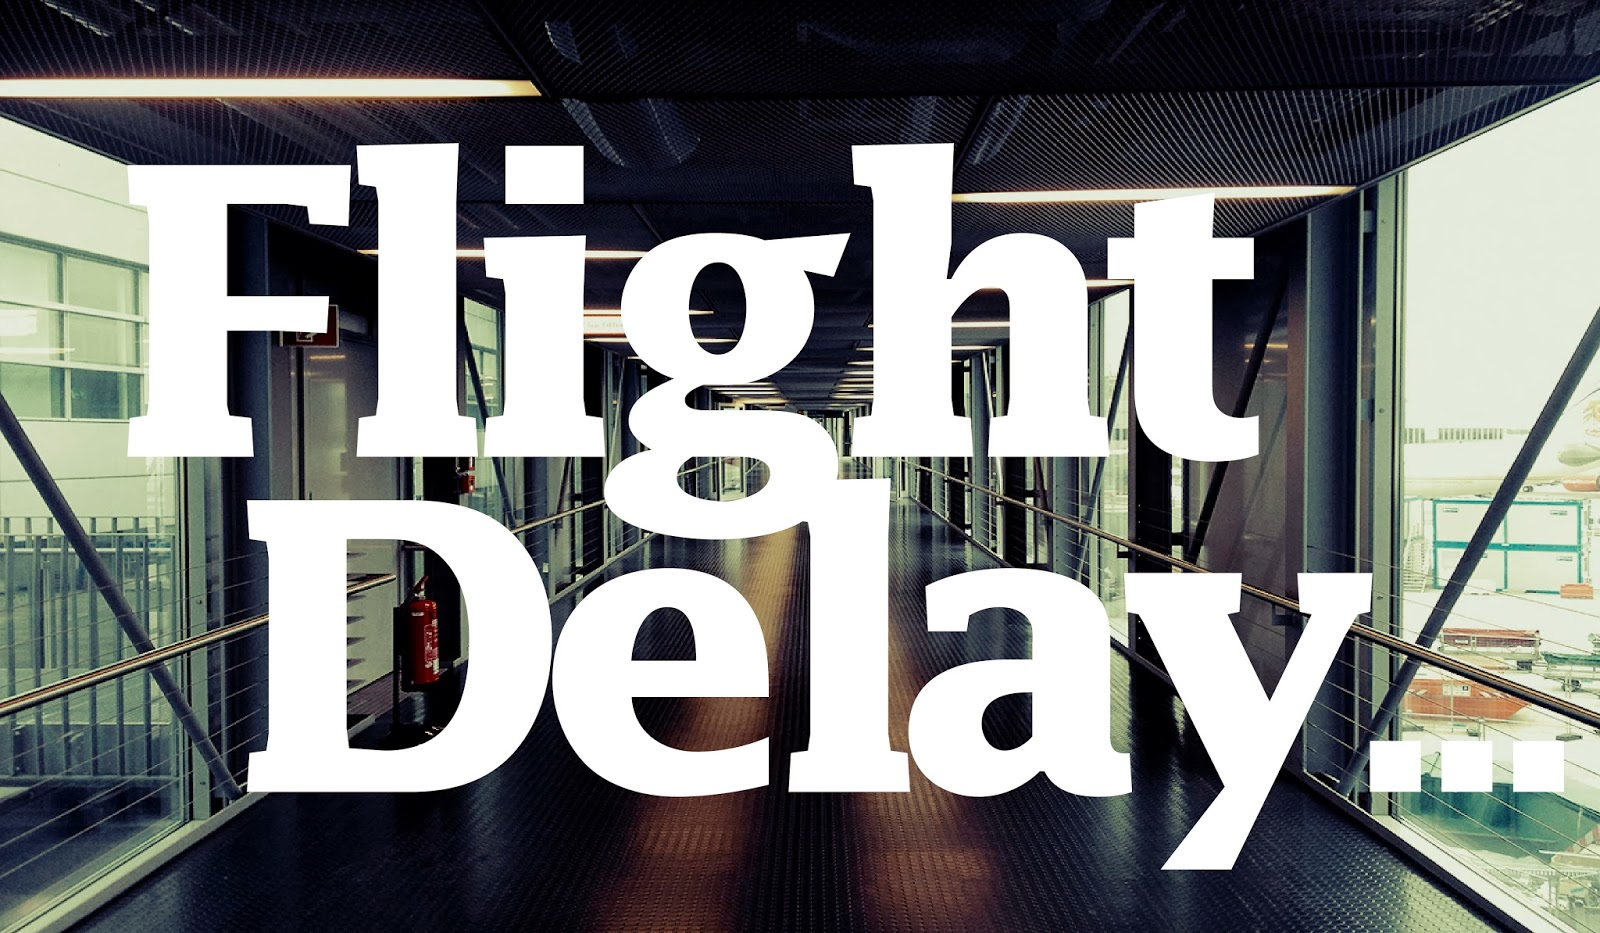 flight delay typography